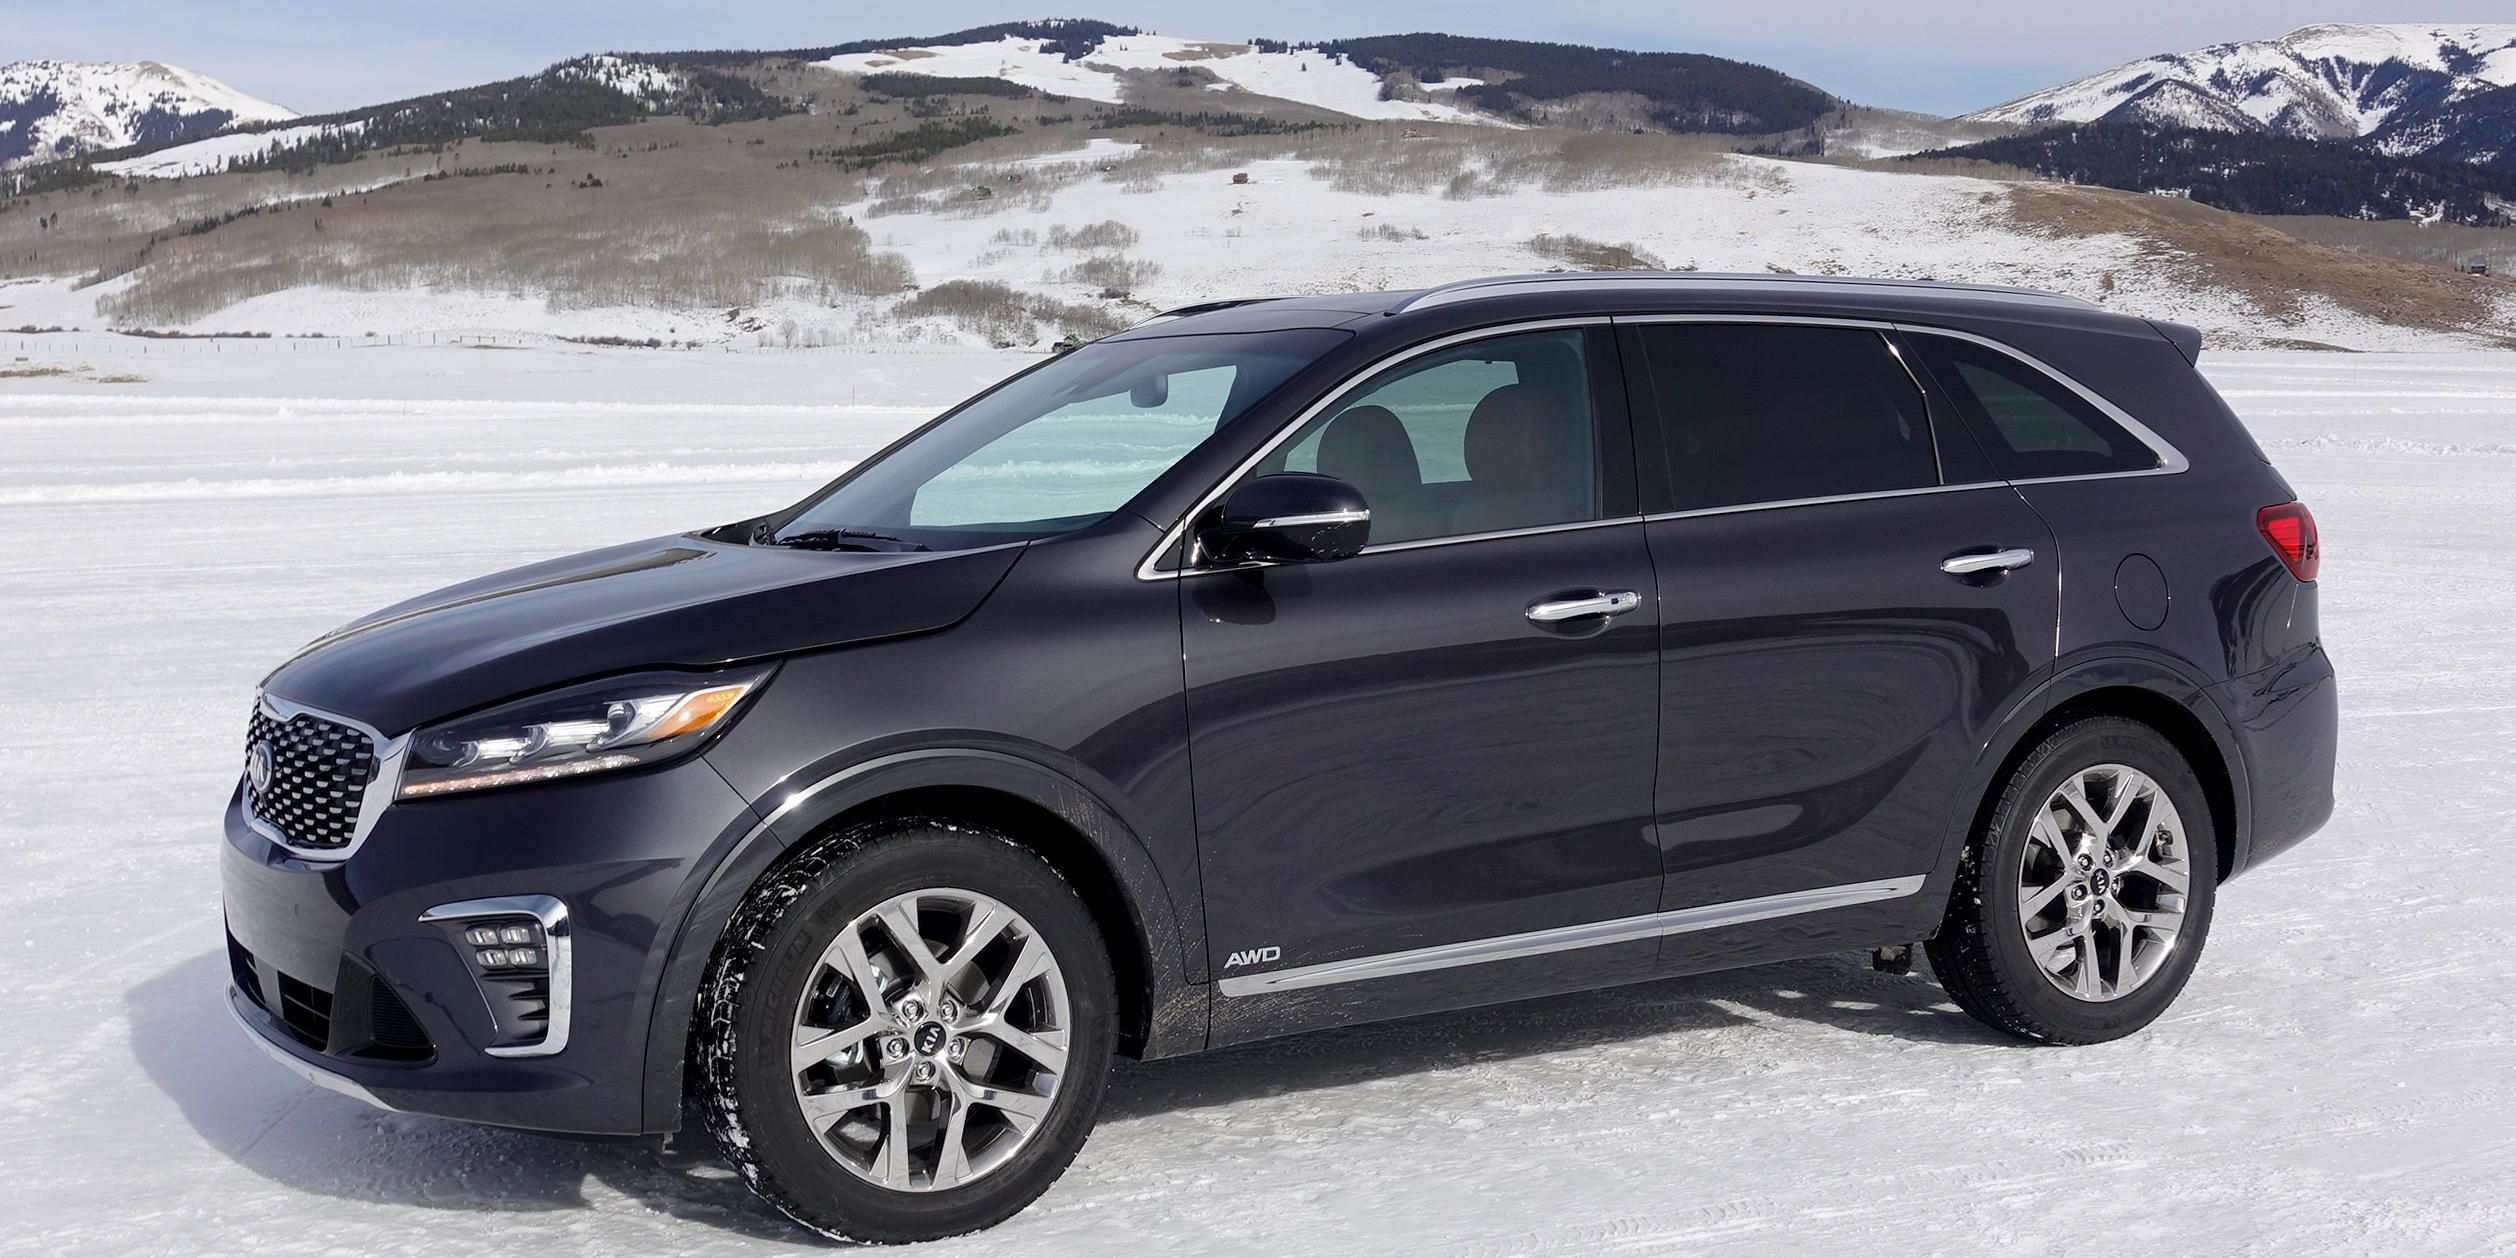 48 The Best 2019 Kia Sorento Release Date Photos